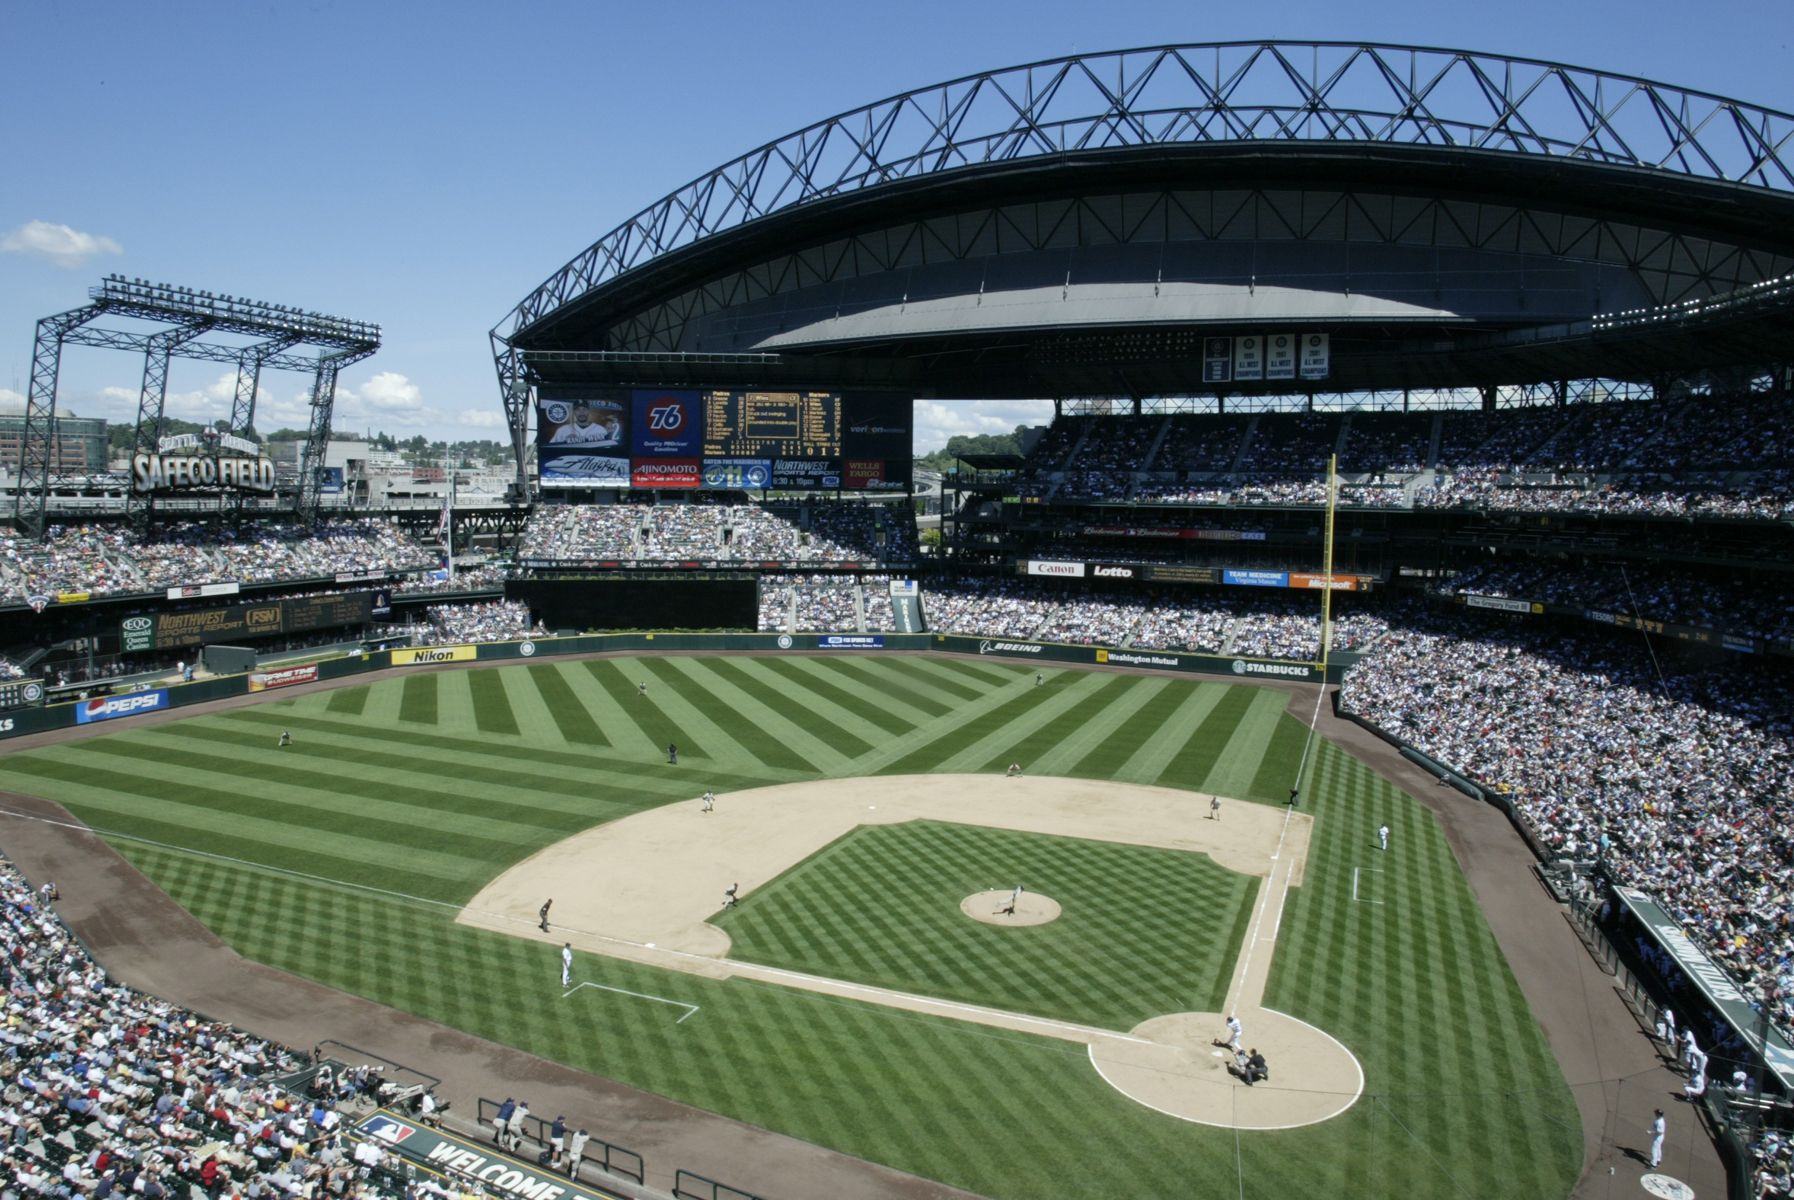 e of the most beautiful ballparks Safeco Field I pletely agree